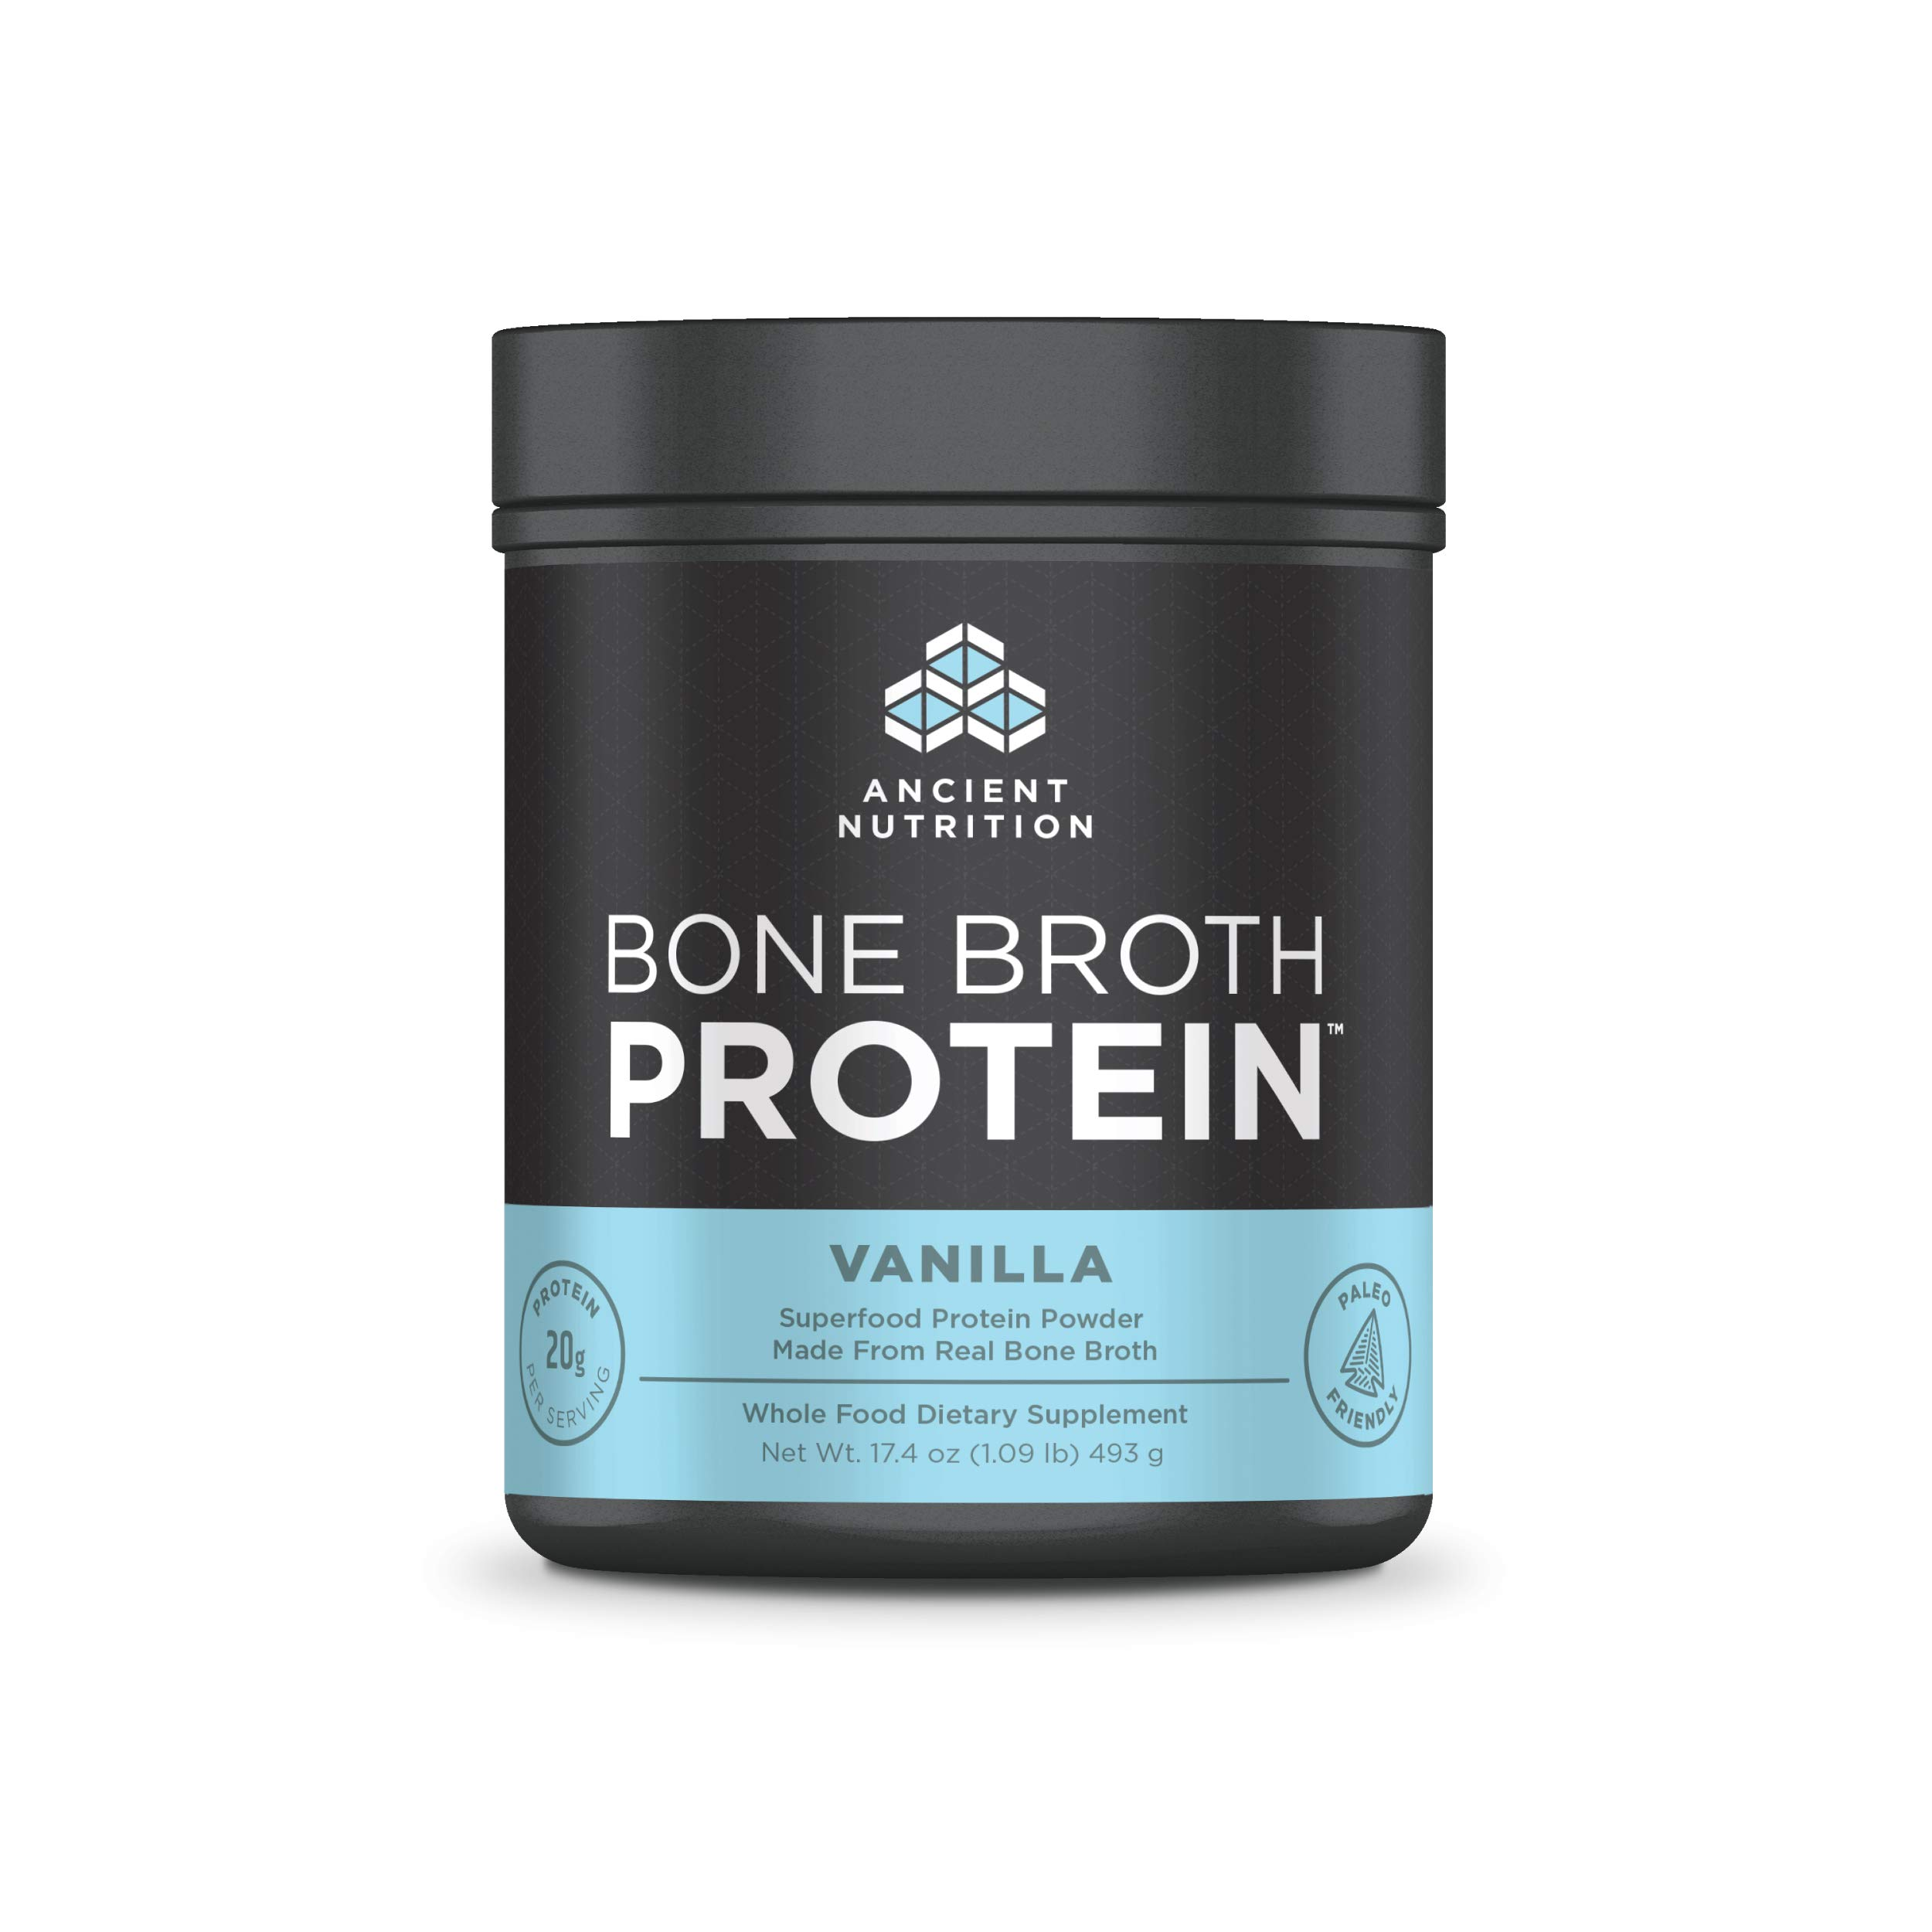 Ancient Nutrition Bone Broth Protein Powder, 20g Protein Per Serving, Paleo, Low Carb Superfood, Vanilla, 20 Servings by Ancient Nutrition